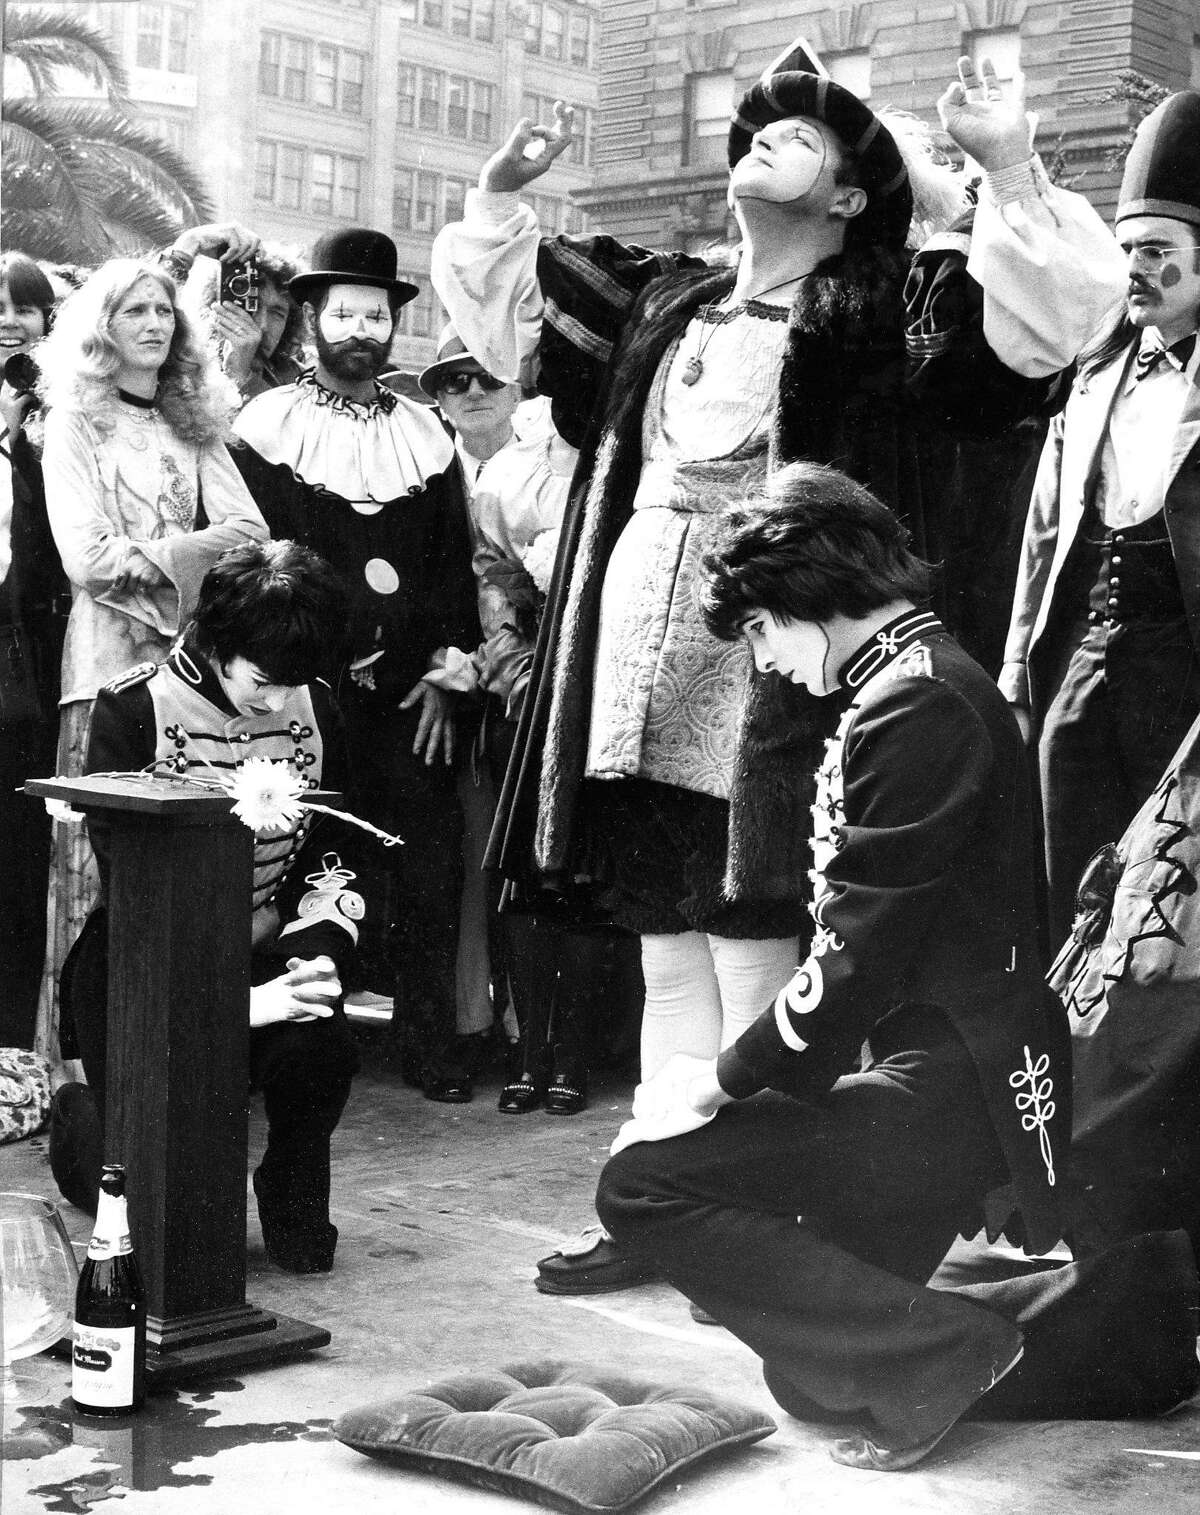 Oct. 28, 1972: Robert Shields, right, and Lorene Yarnell marry in Union Square.